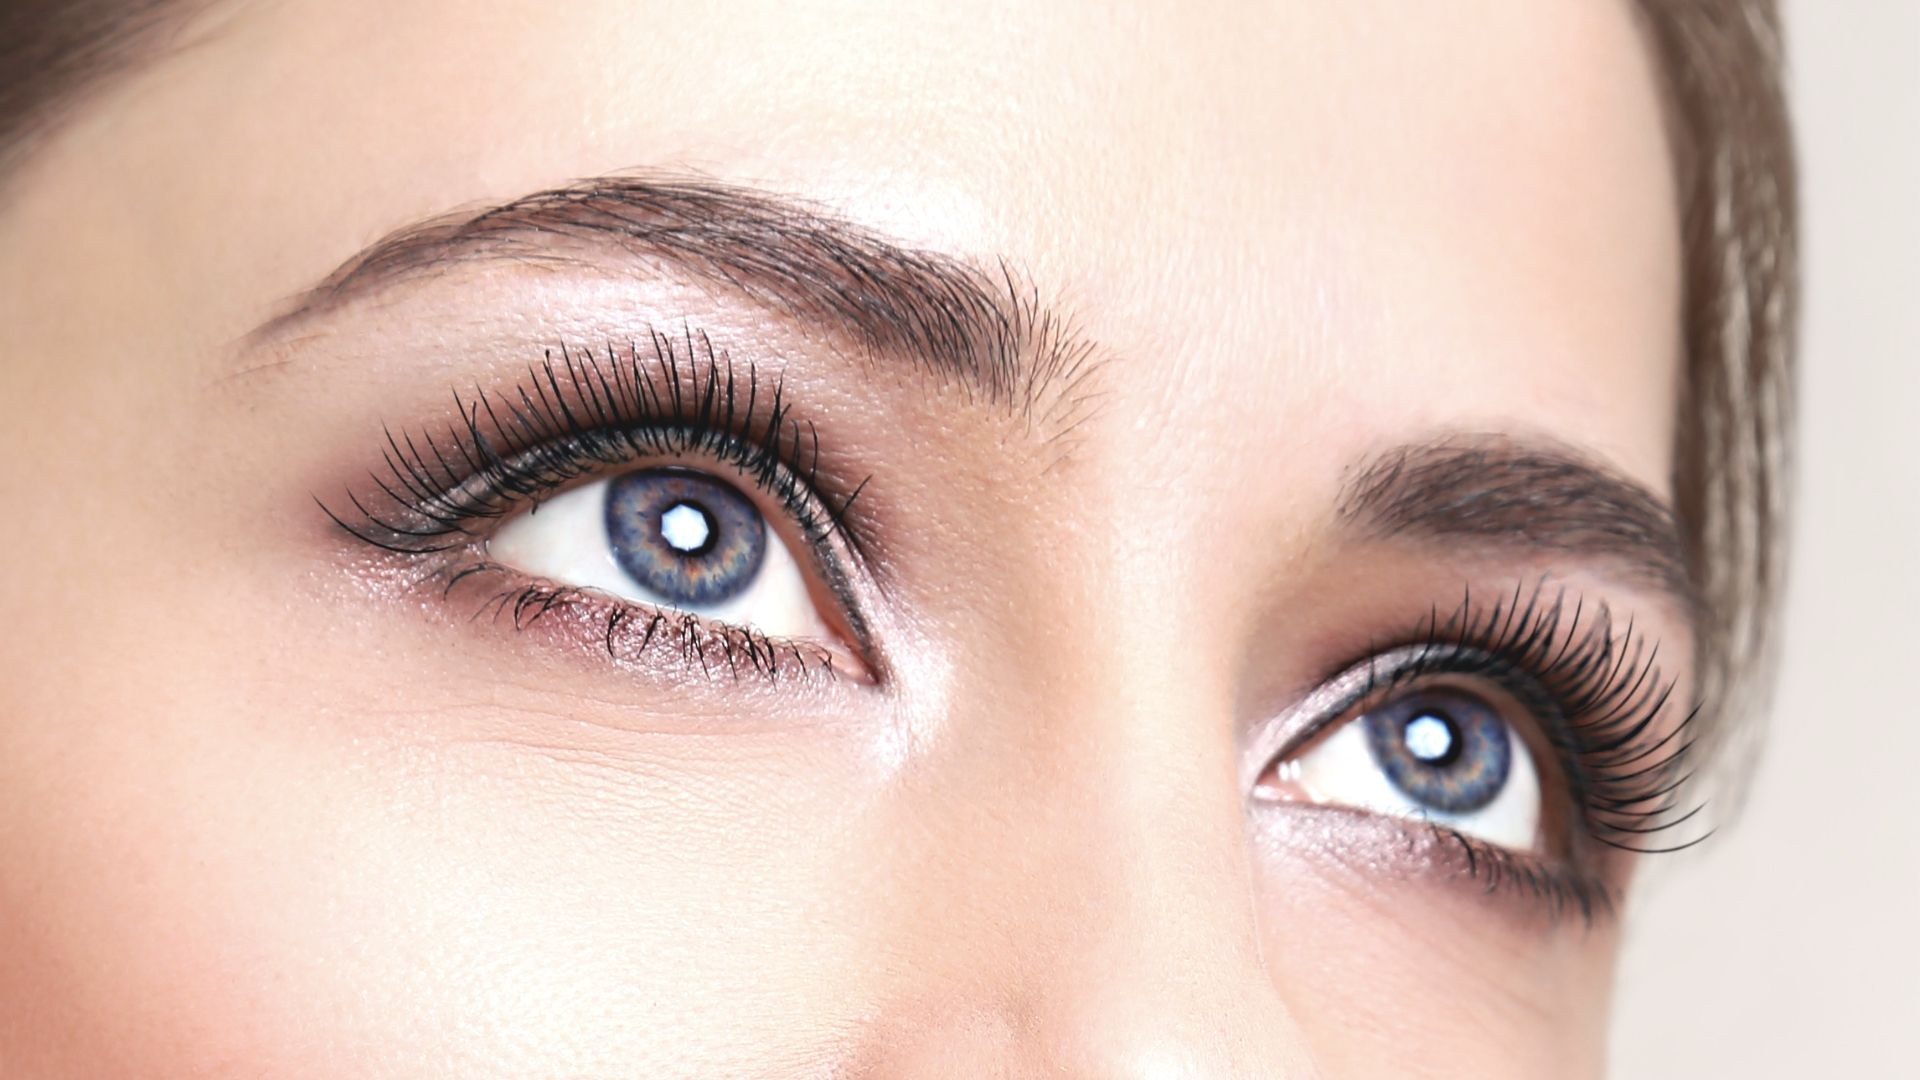 captivating lashes - Desire thicker longer darker lashes? Latisse® is an FDA approved liquid prescription serum for extending lash growth. Applied at home nightly at the base of your lashes.